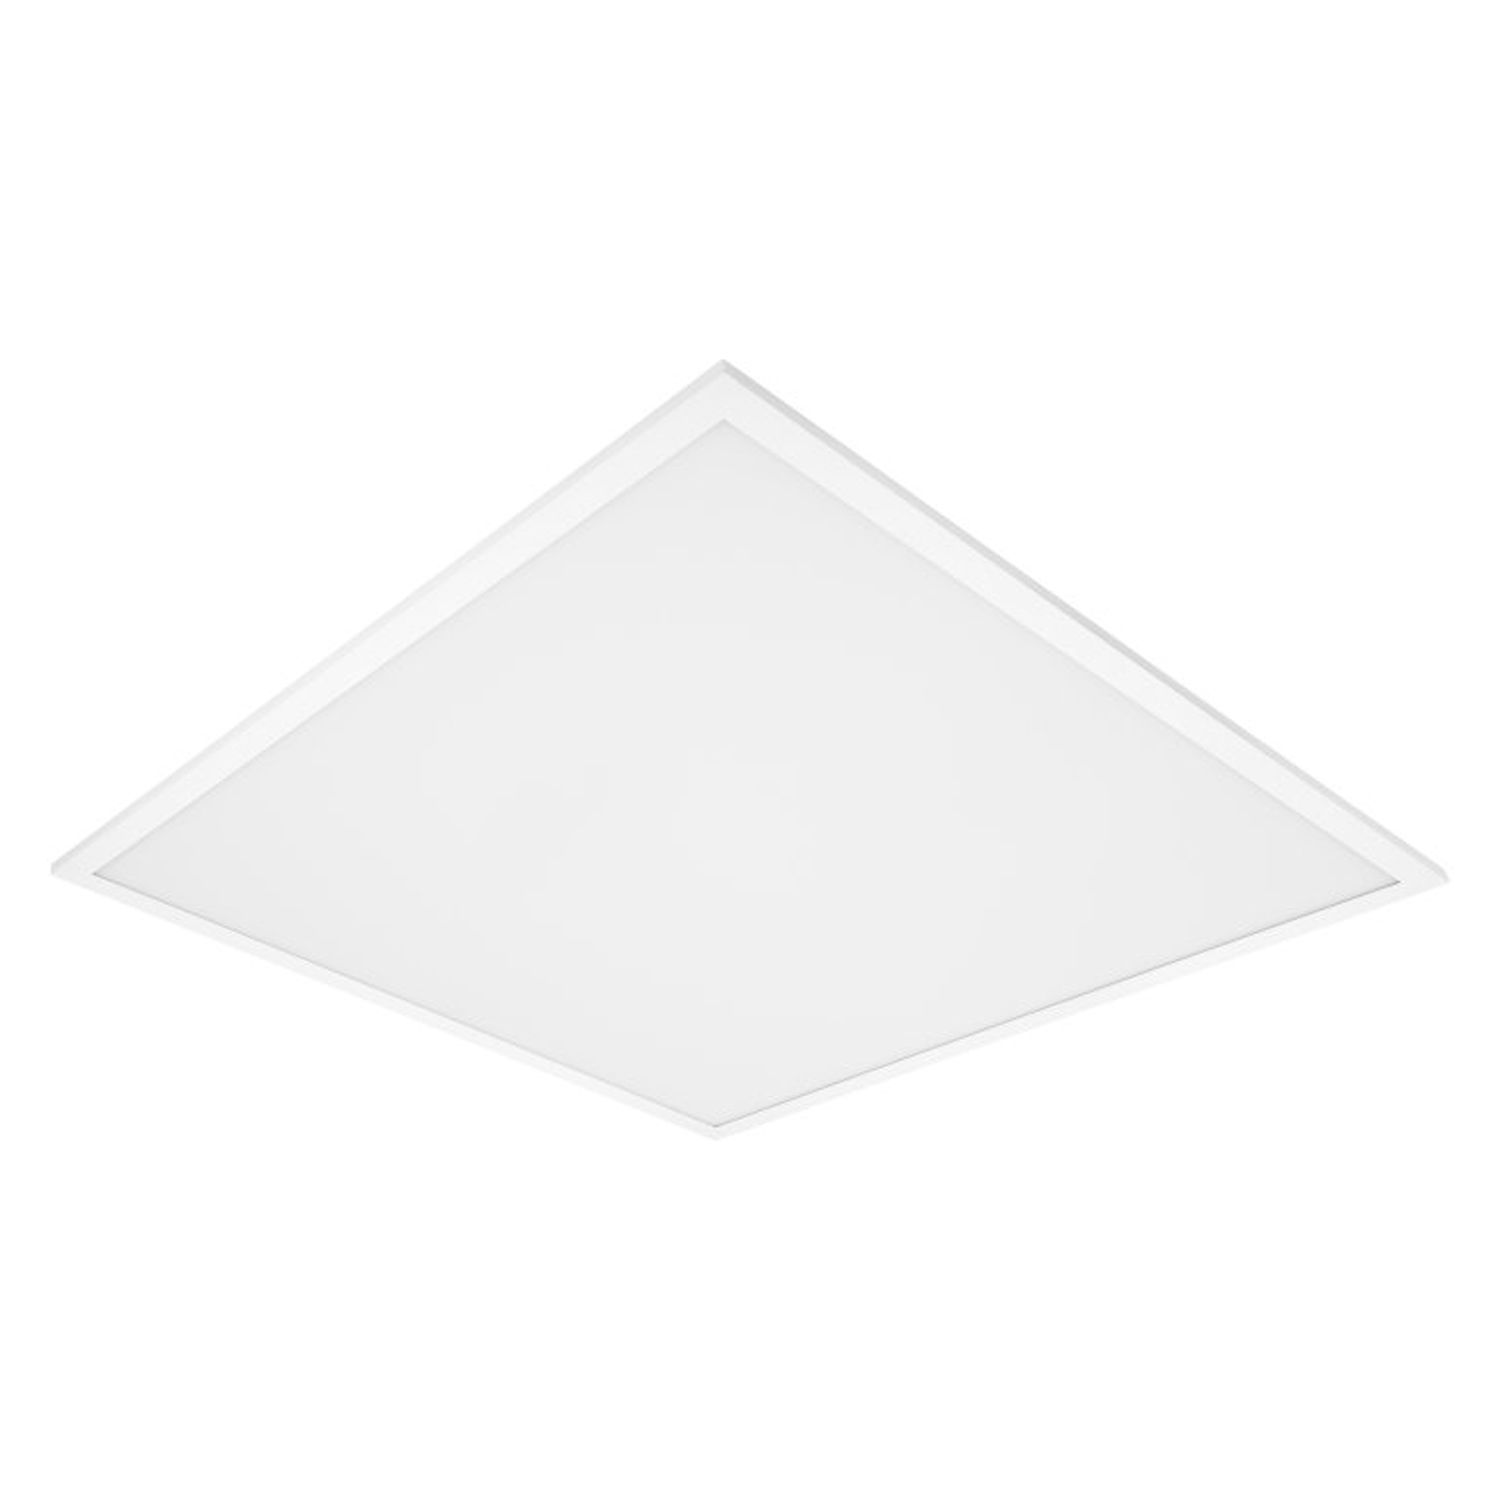 Ledvance LED Panel Performance 62.5x62.5cm 4000K 30W  UGR<19